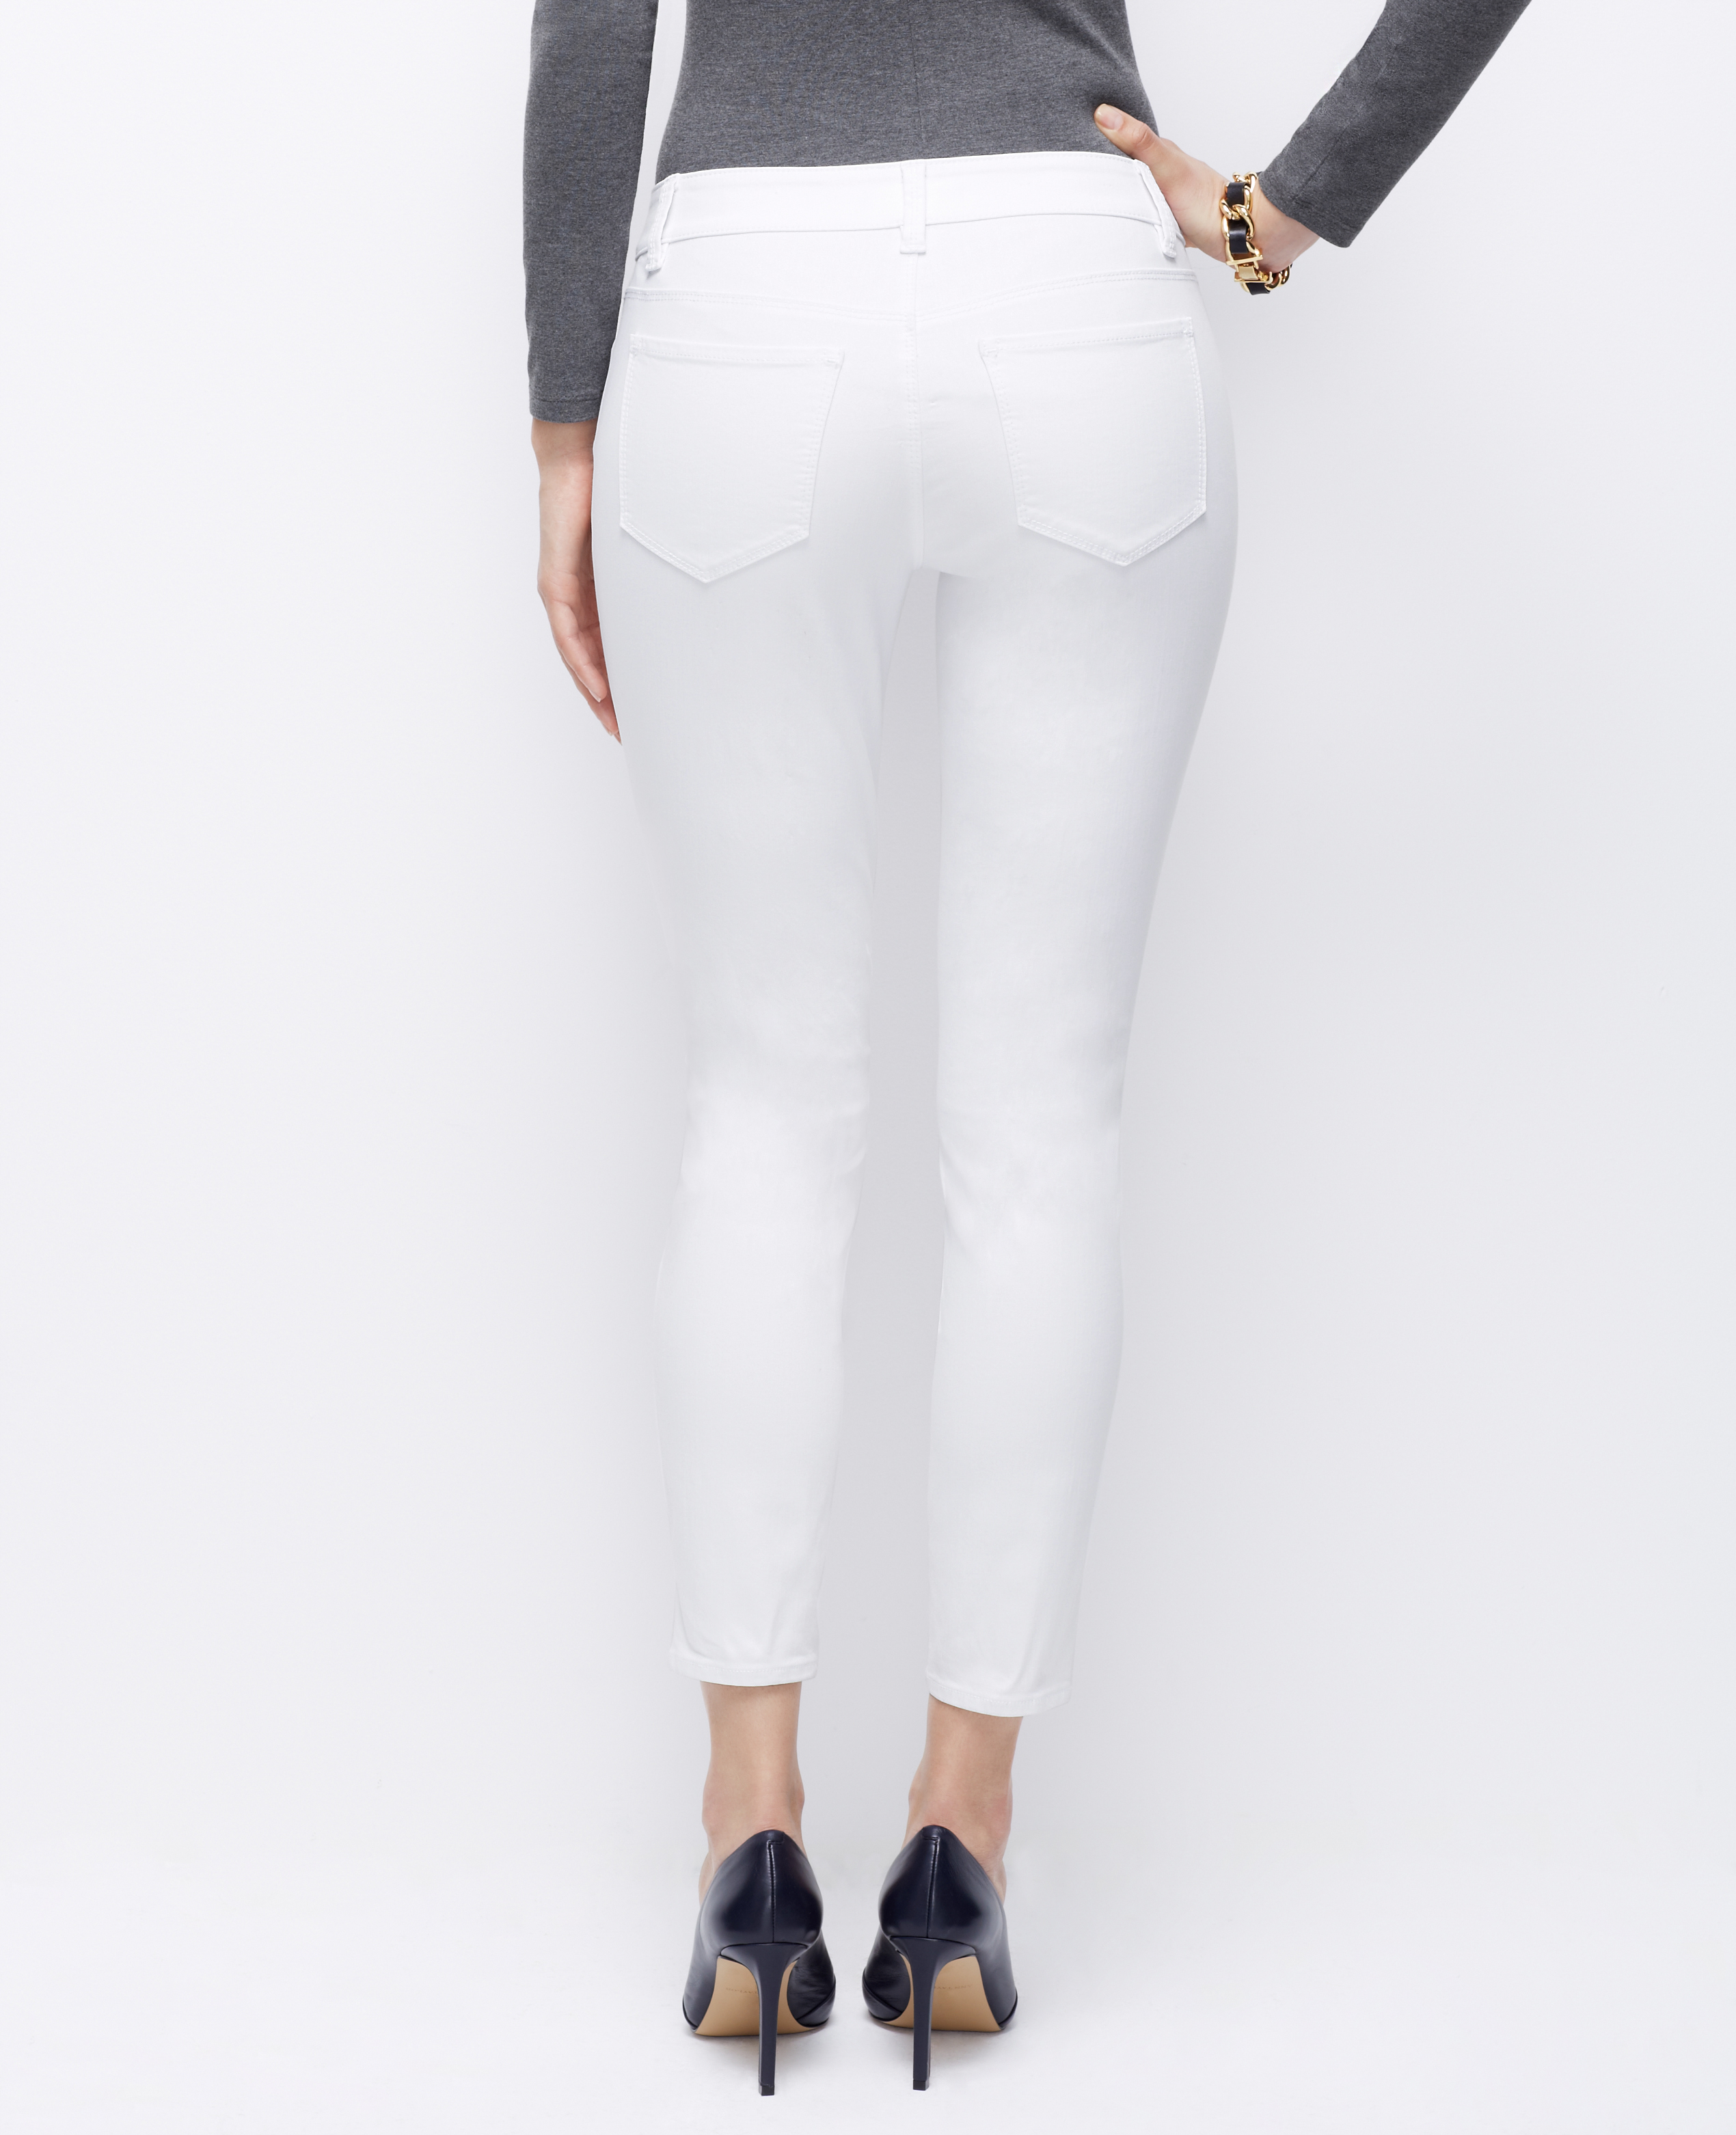 Ann taylor Petite Curvy Skinny Ankle Jeans in White | Lyst